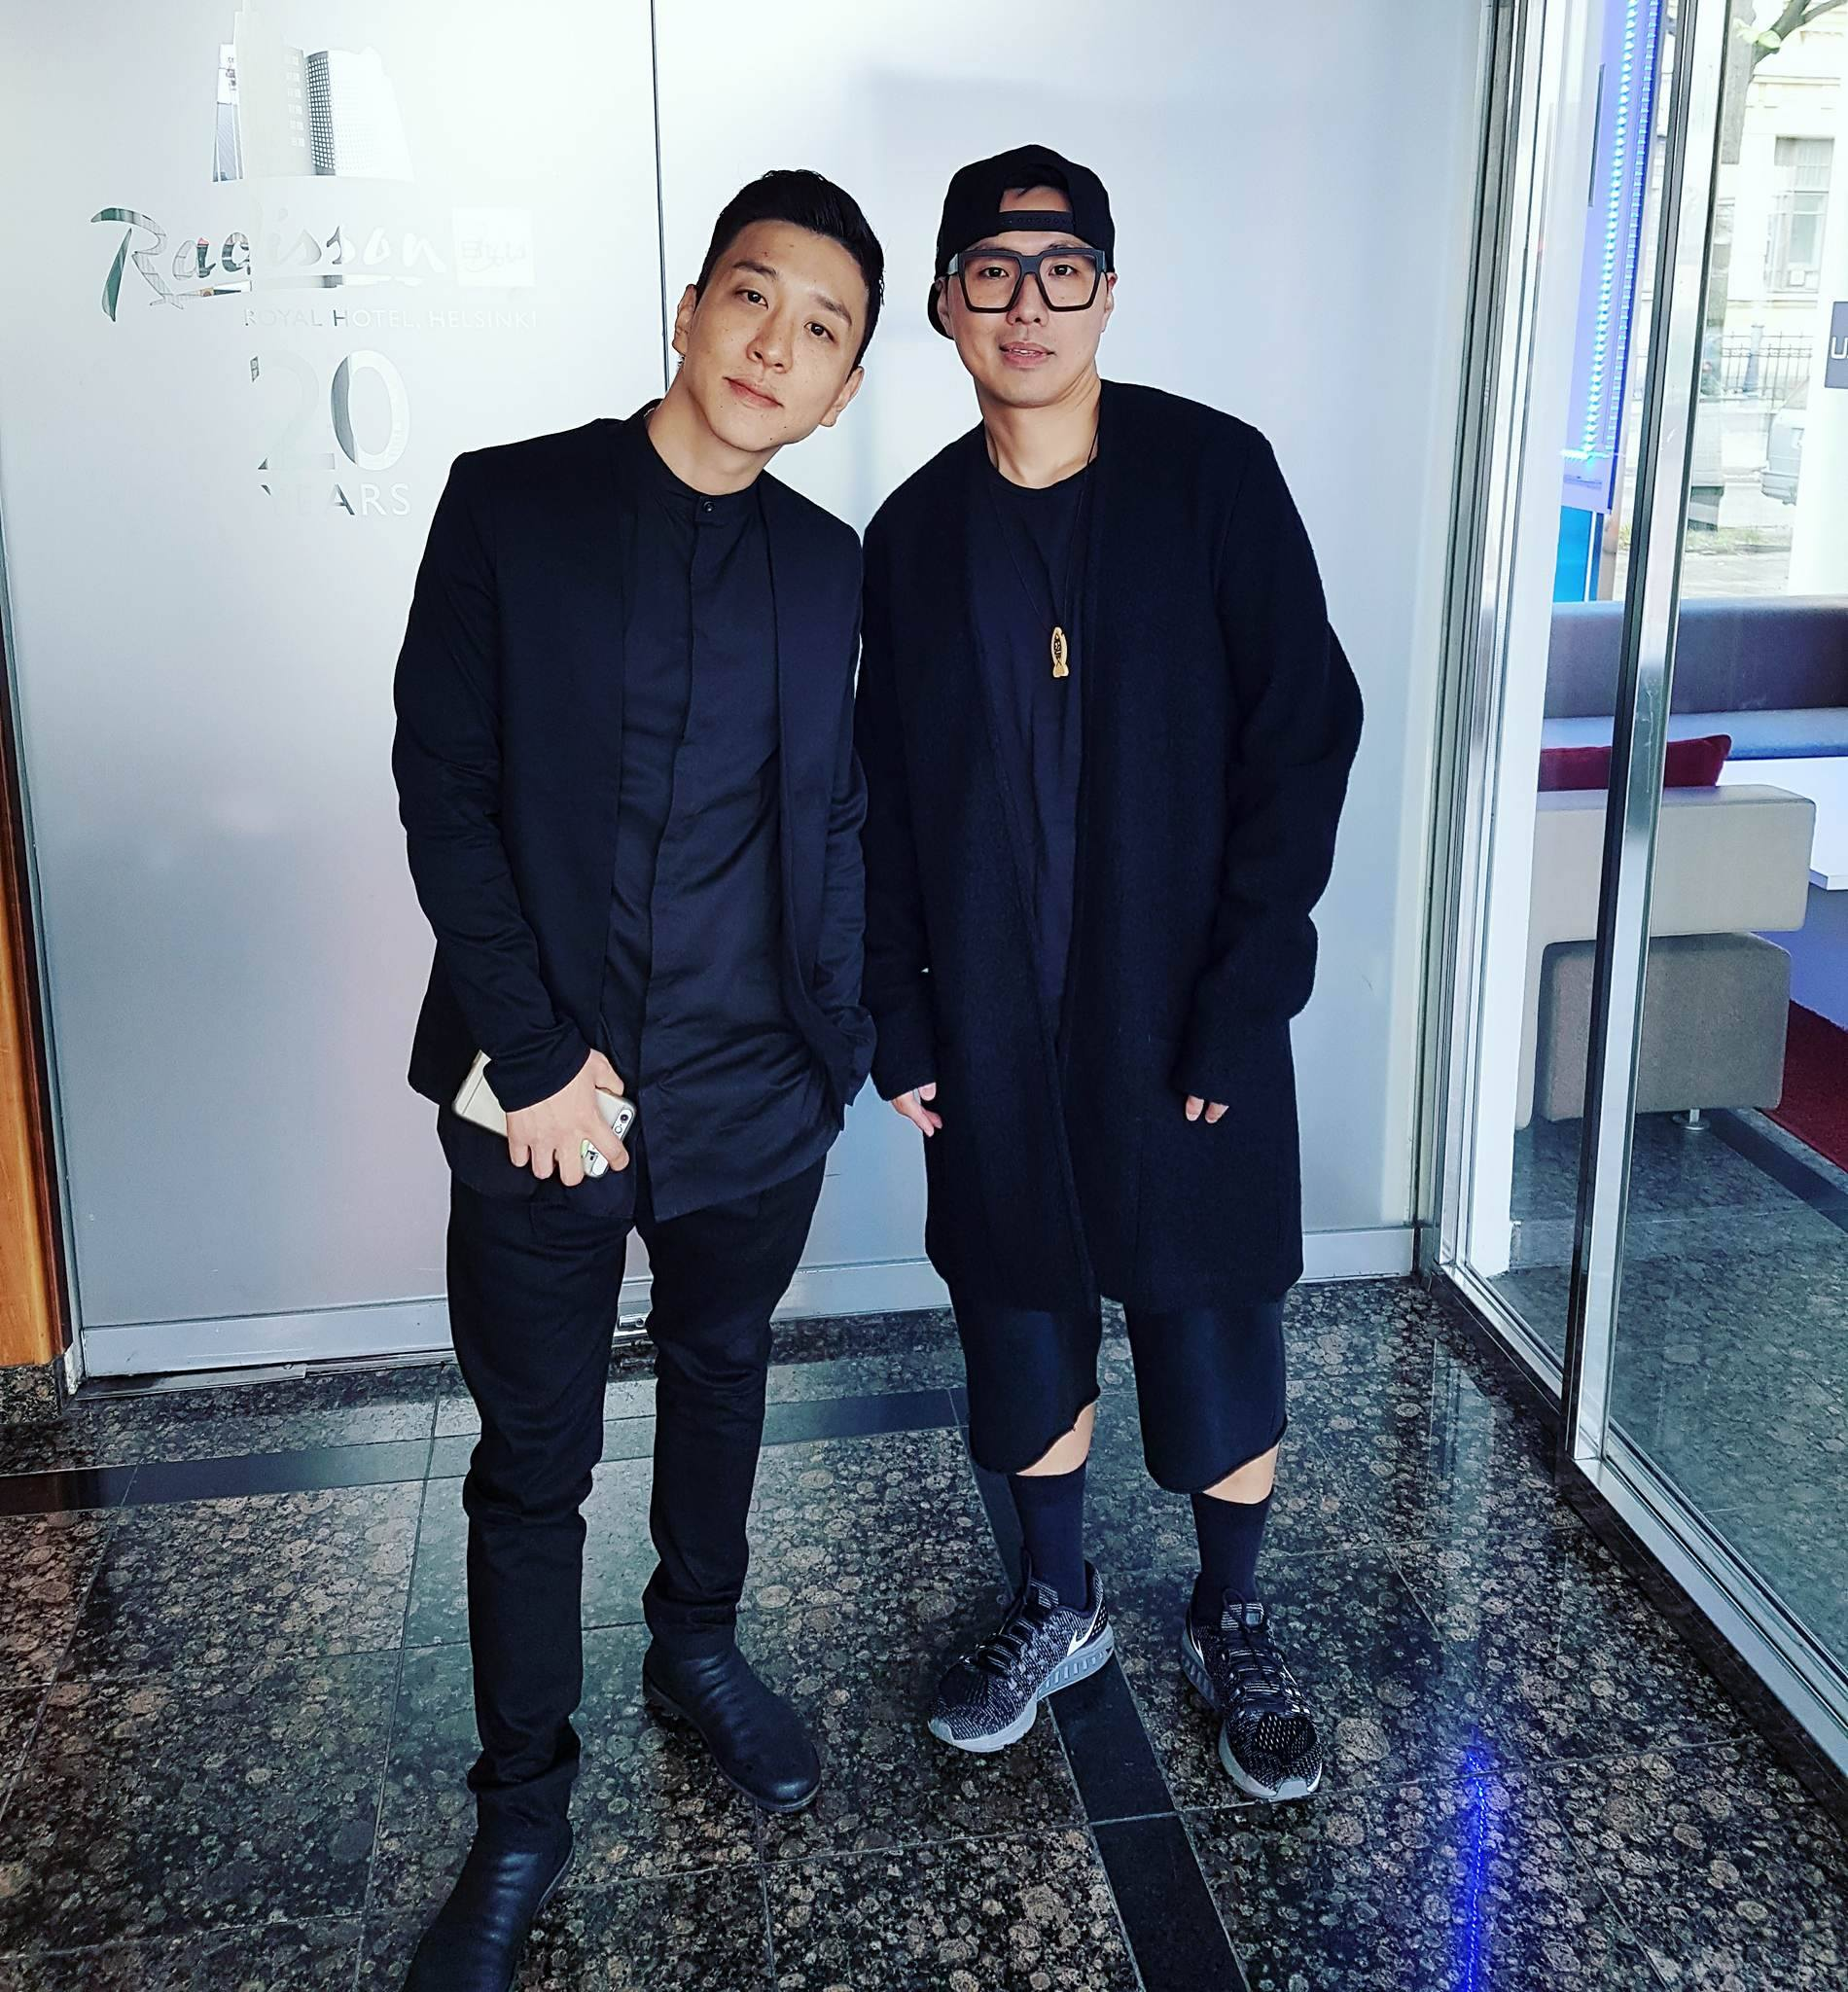 Deekei and Flowsik.